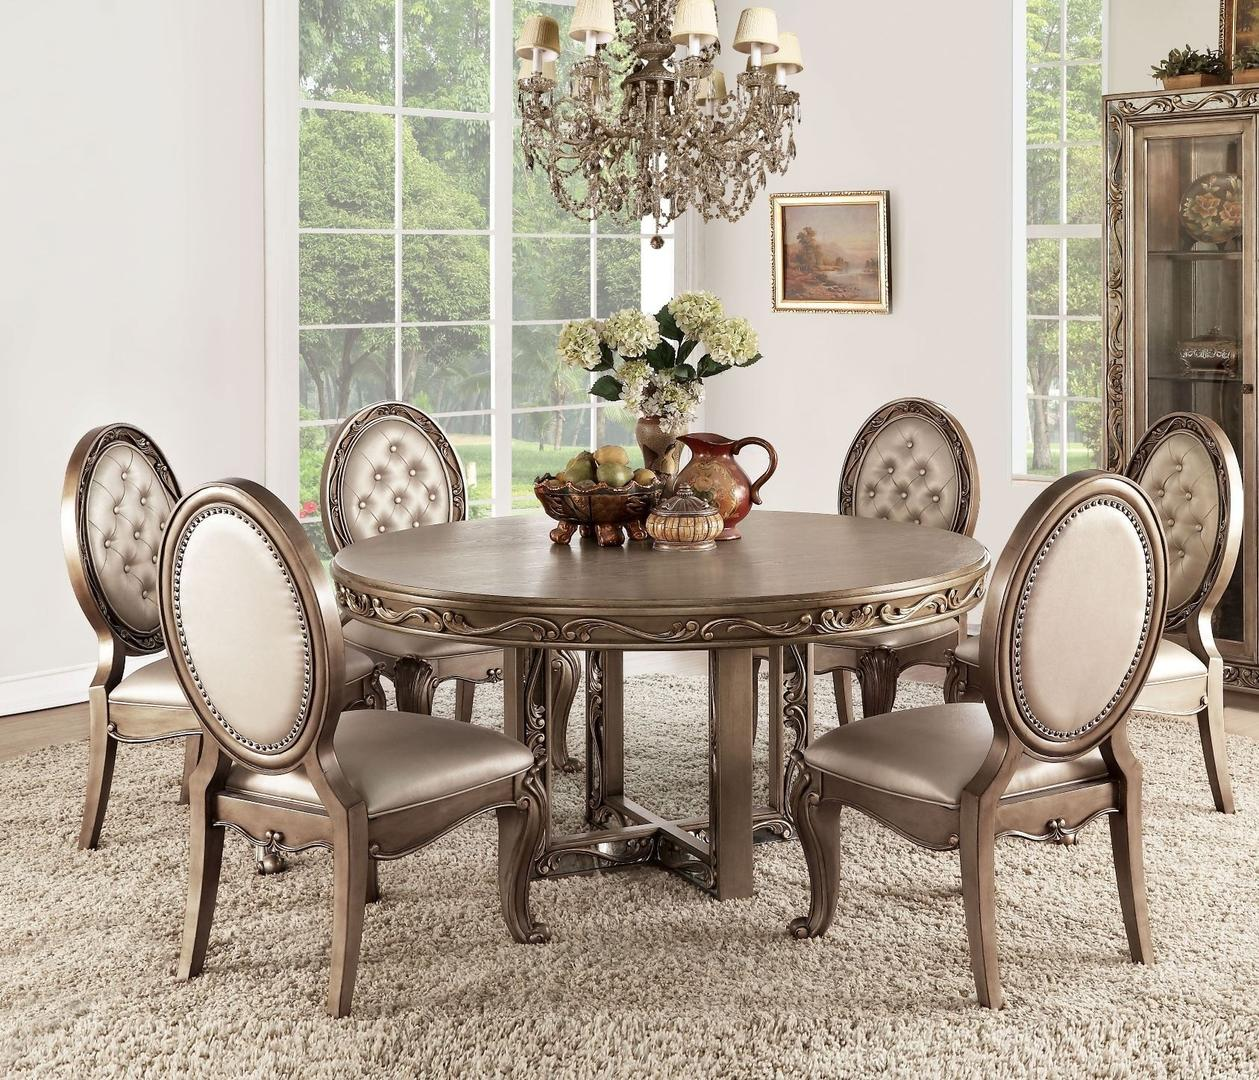 Acme 63785 Orianne Gold Wood Finish 7 Piece Round Dining Table Set